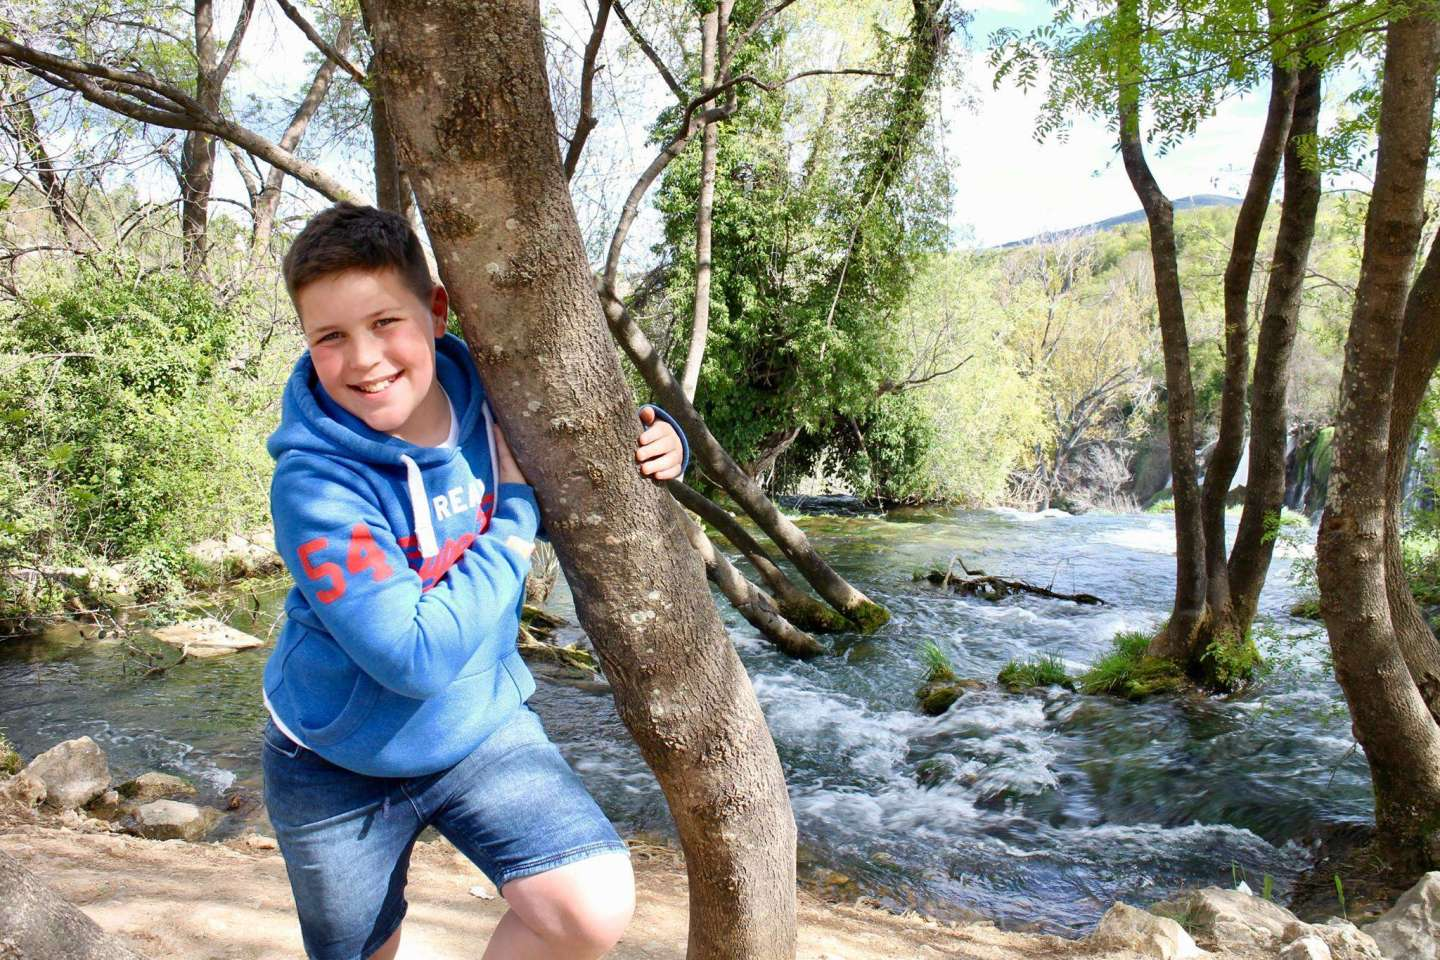 Five Things I Know My Son Needs